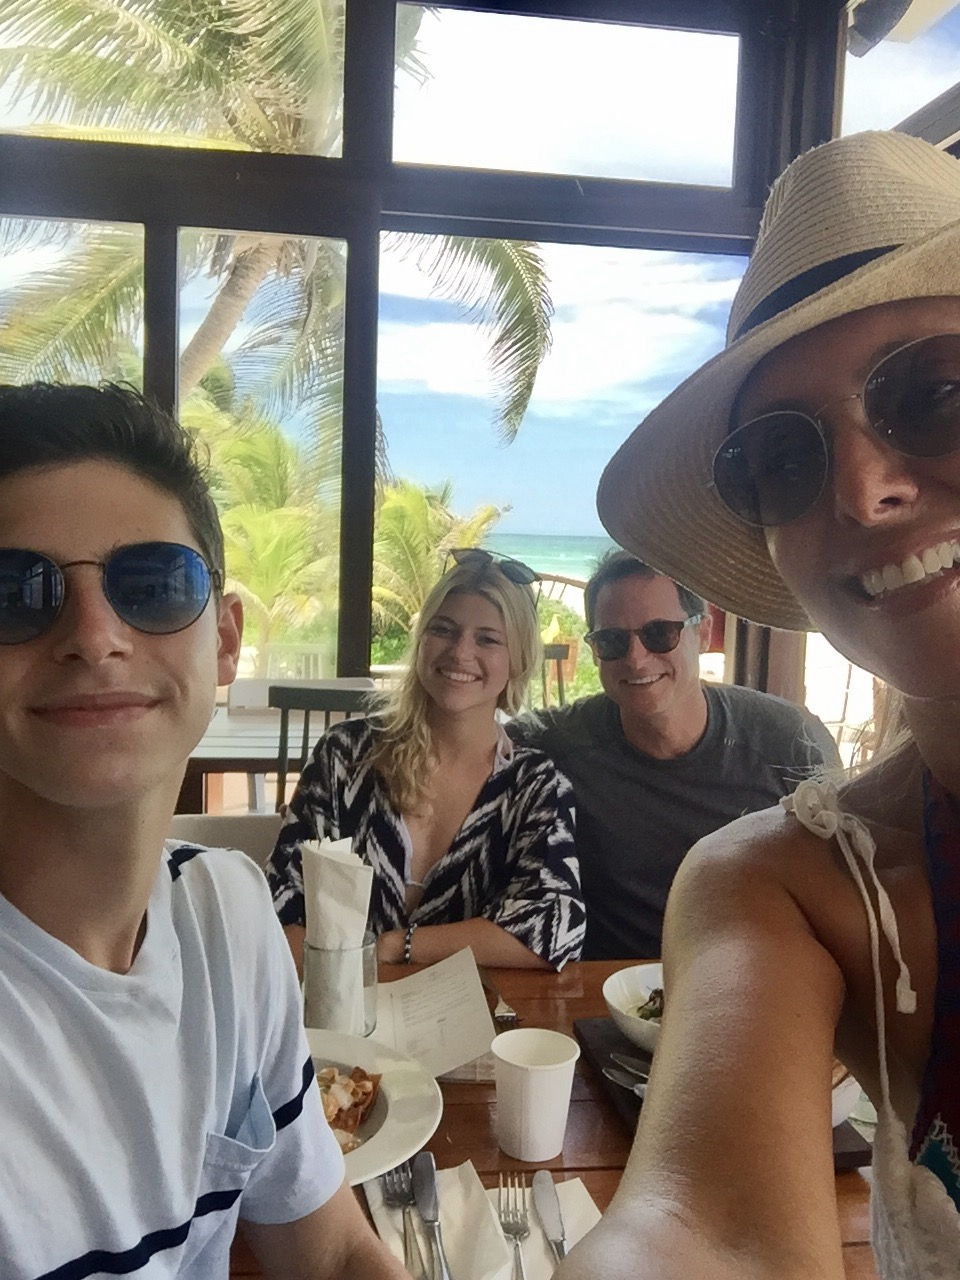 With my family eating lunch at Sanara Tulum sporting our new Berensford Sunglasses.